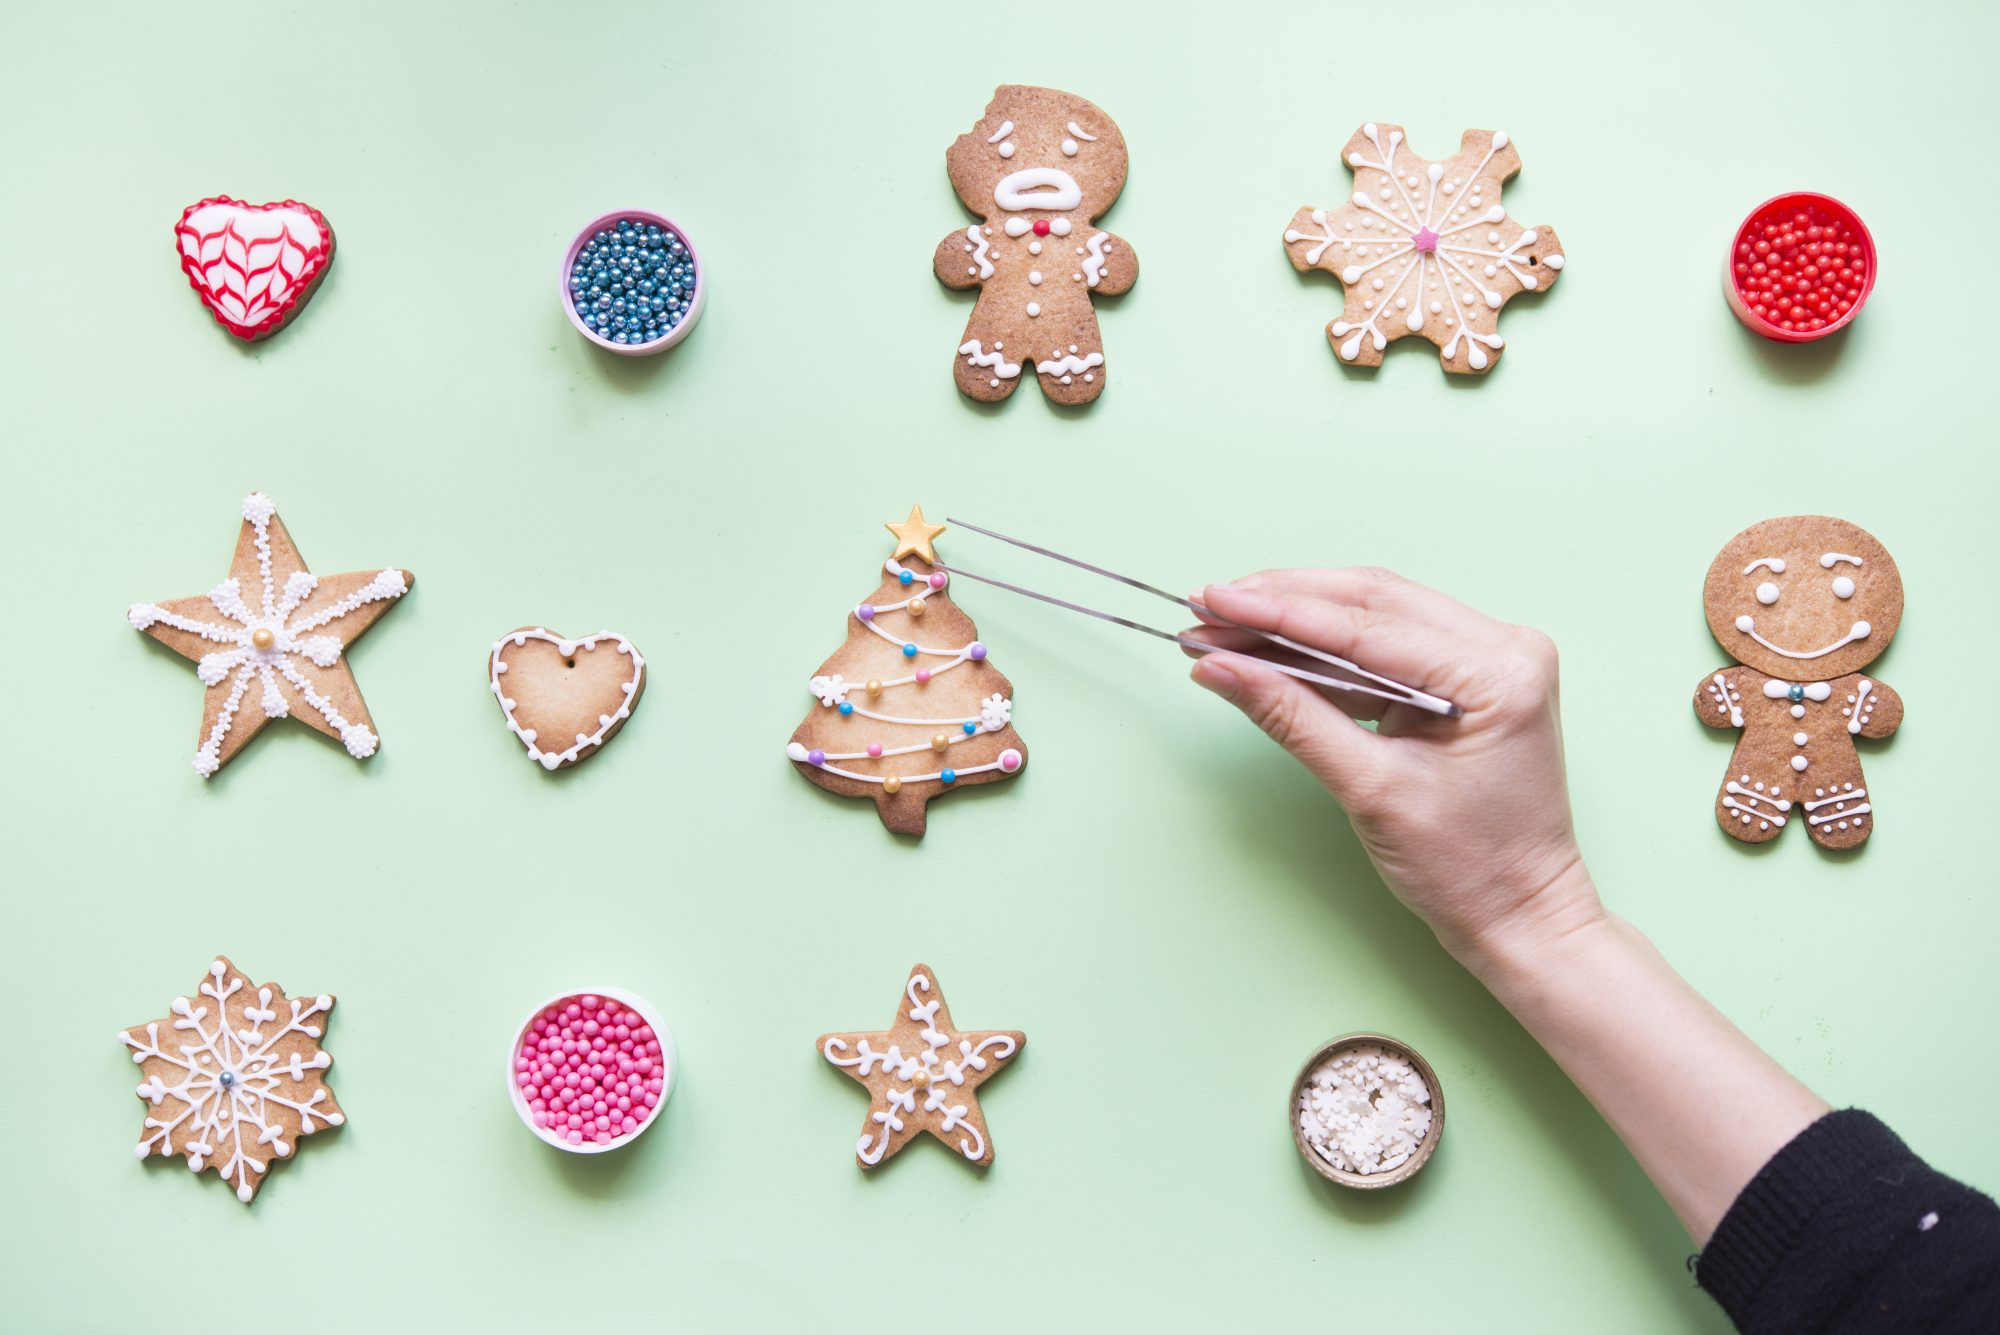 Hallmark Announces New Christmas Cookie Competition Series